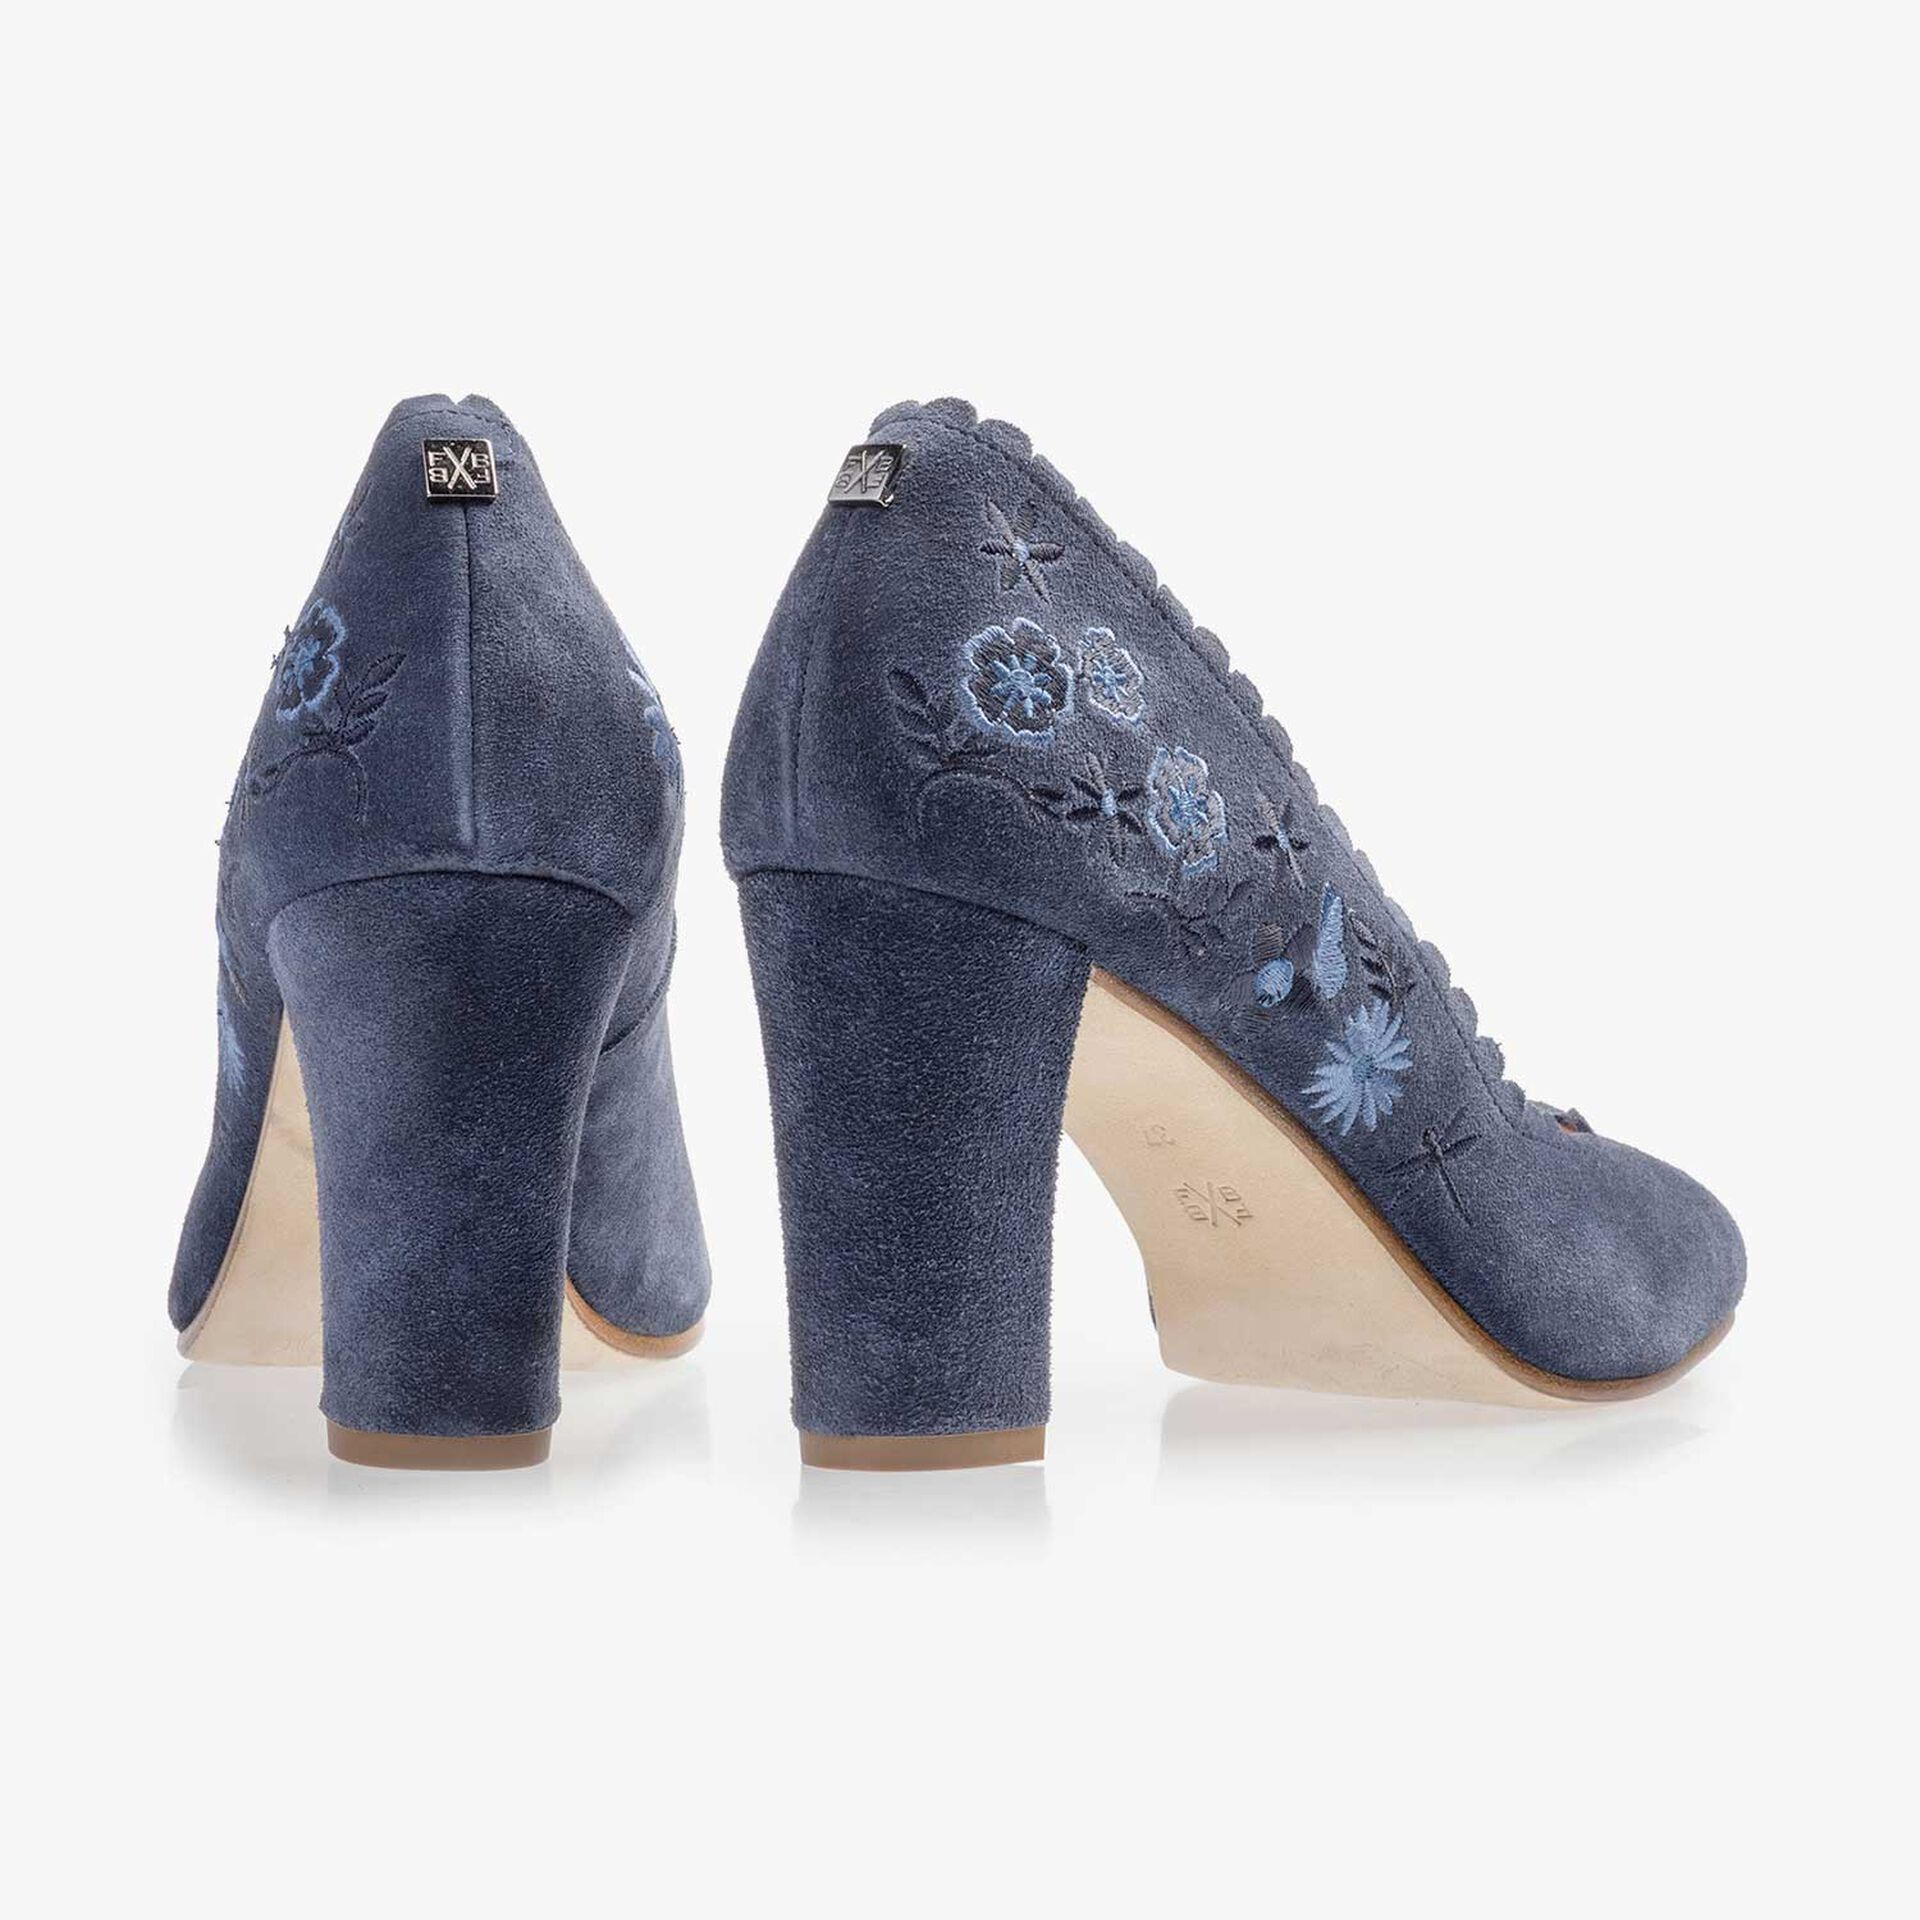 Blue suede leather pumps with floral embroidery stitching